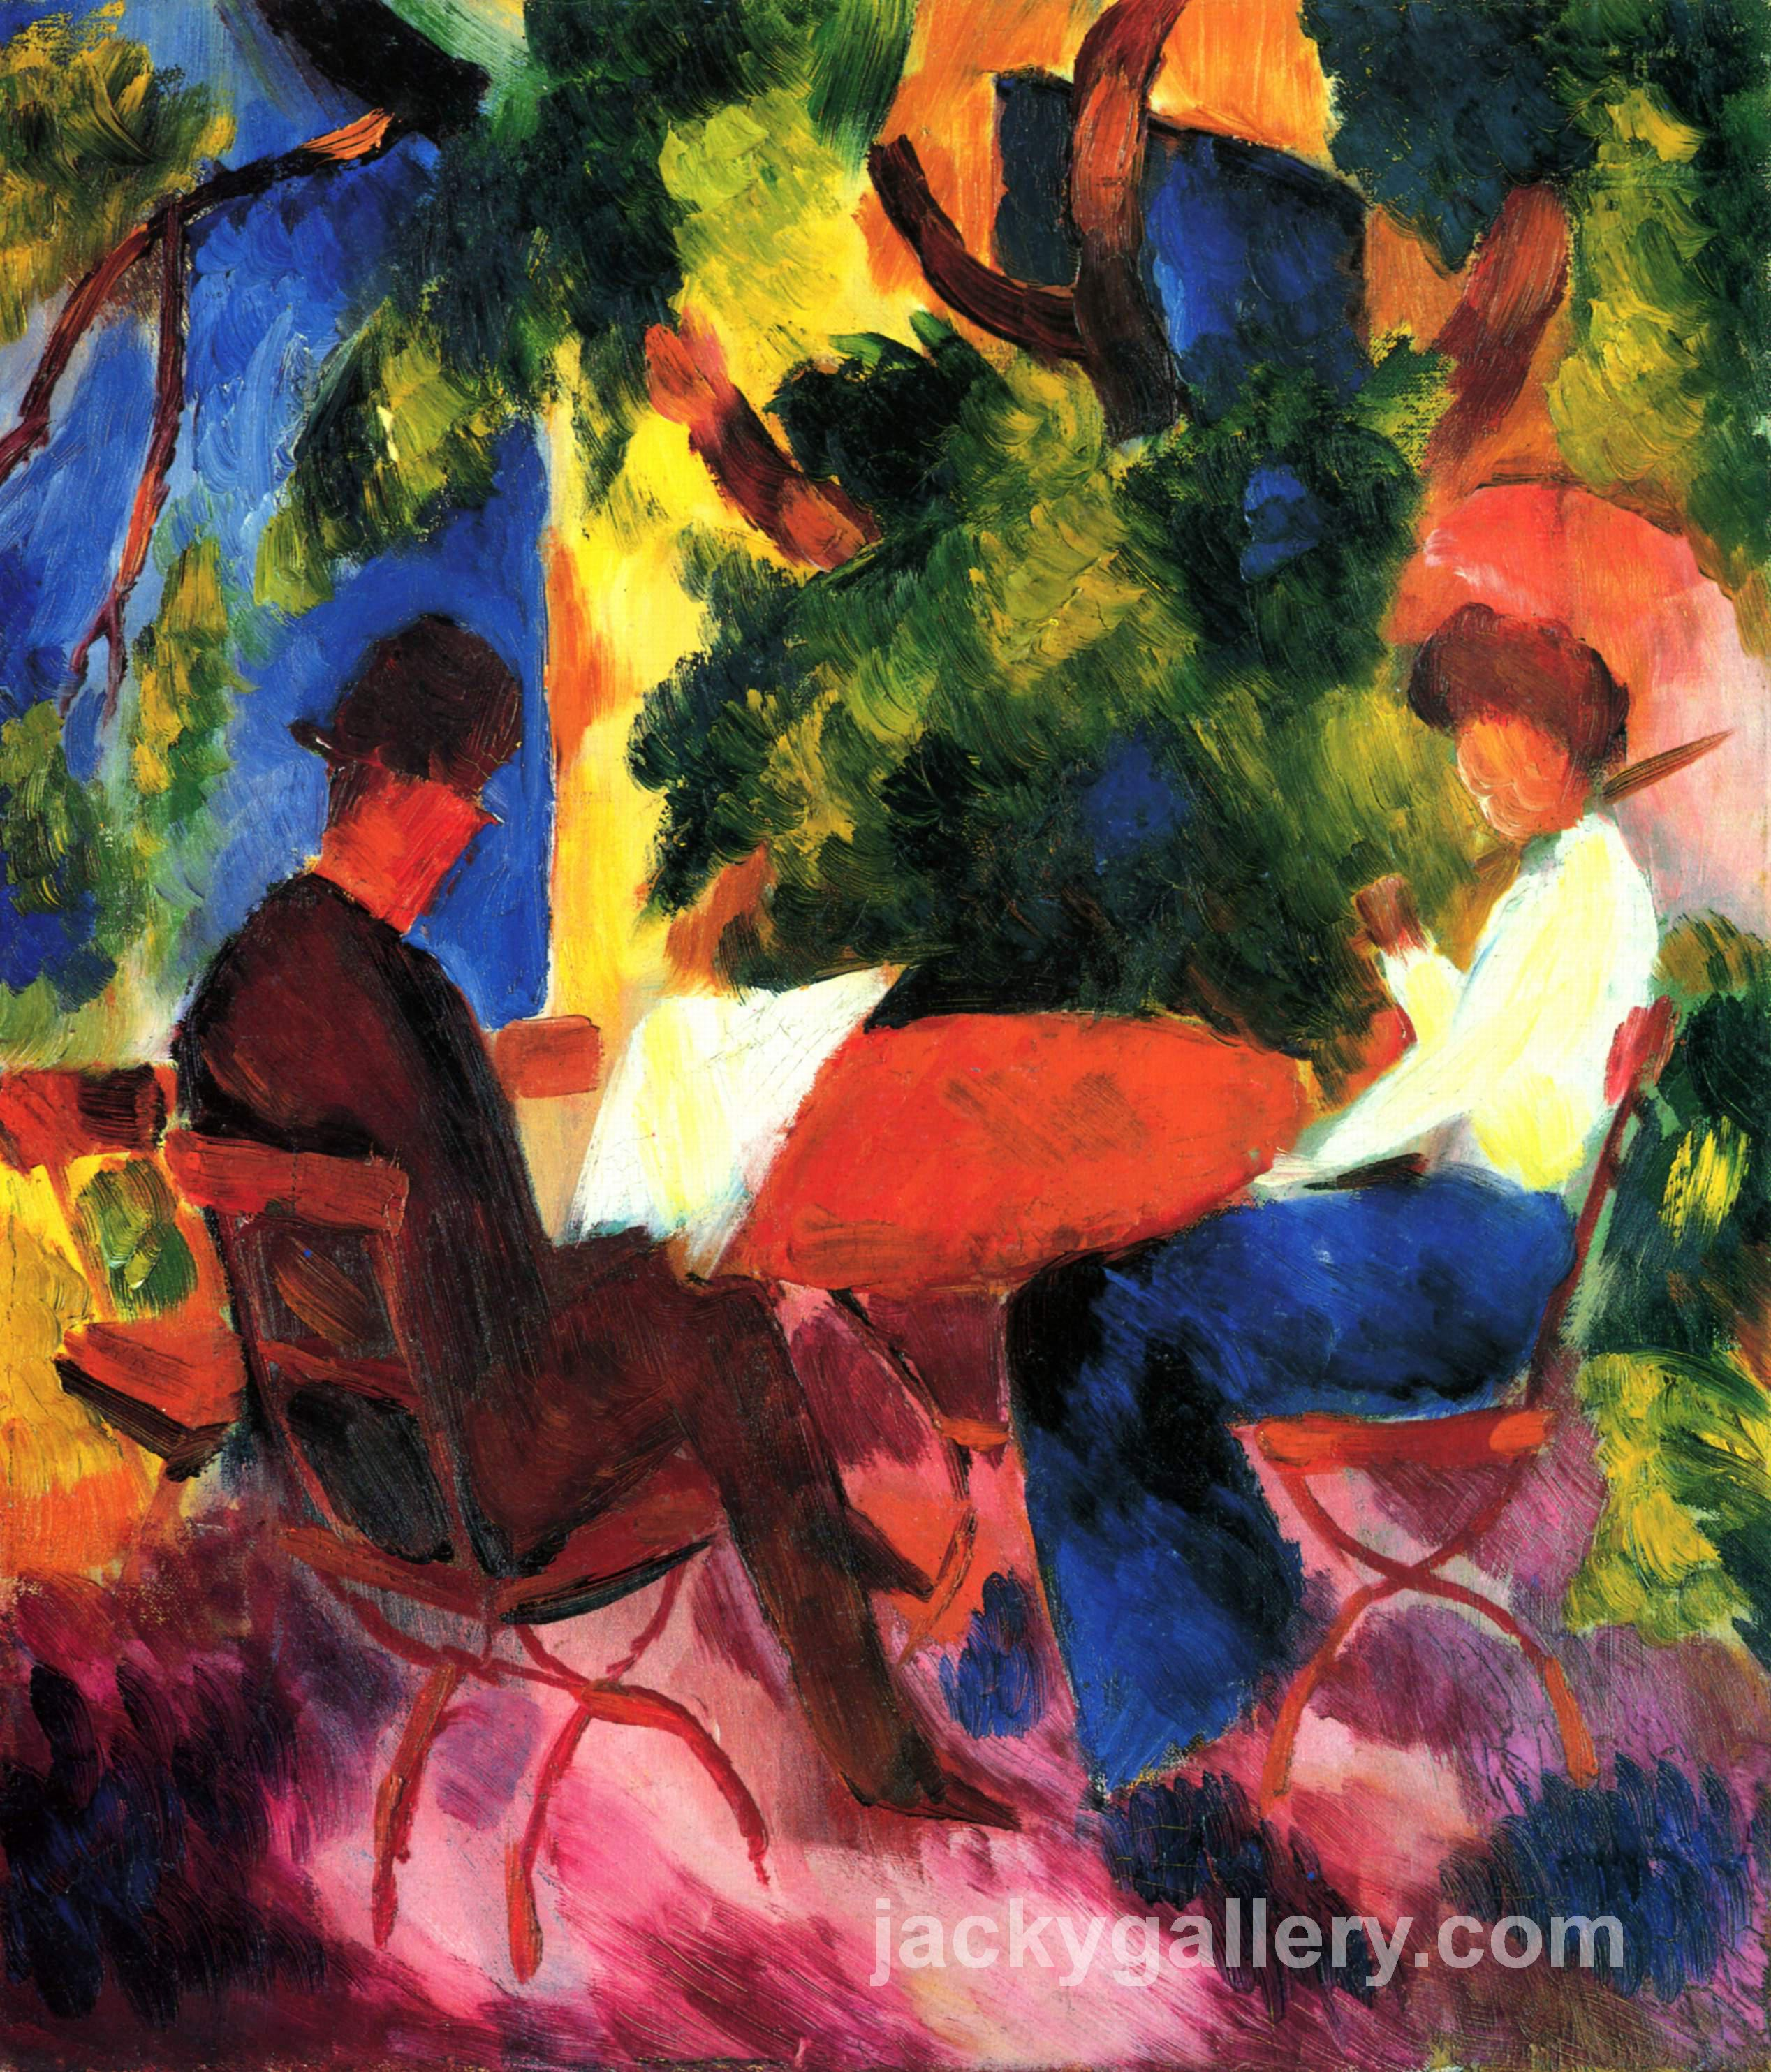 At the Garden Table, August Macke painting